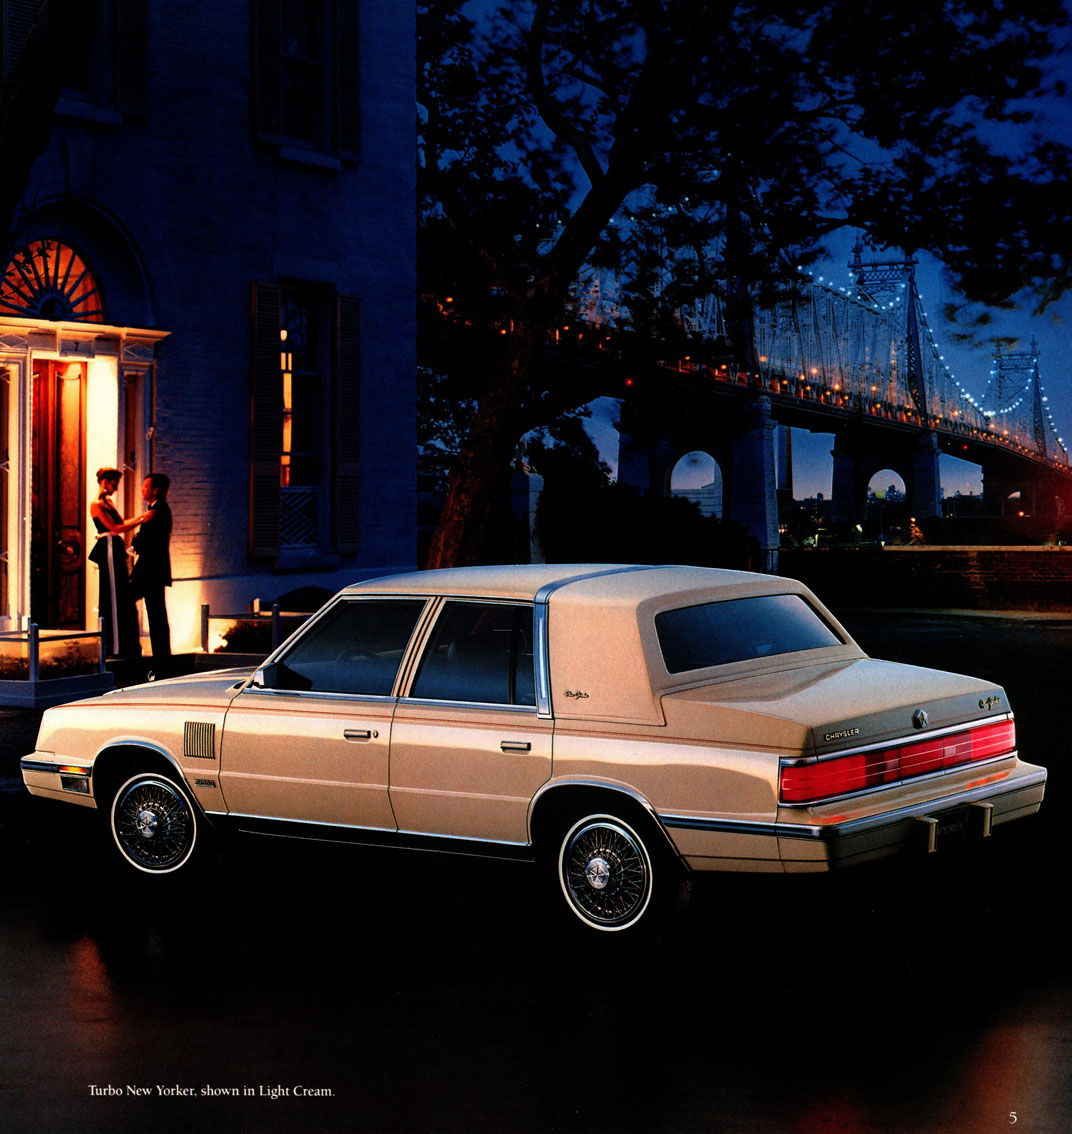 Original furthermore I furthermore  together with Hqdefault together with Gtaiv. on 1988 chrysler new yorker